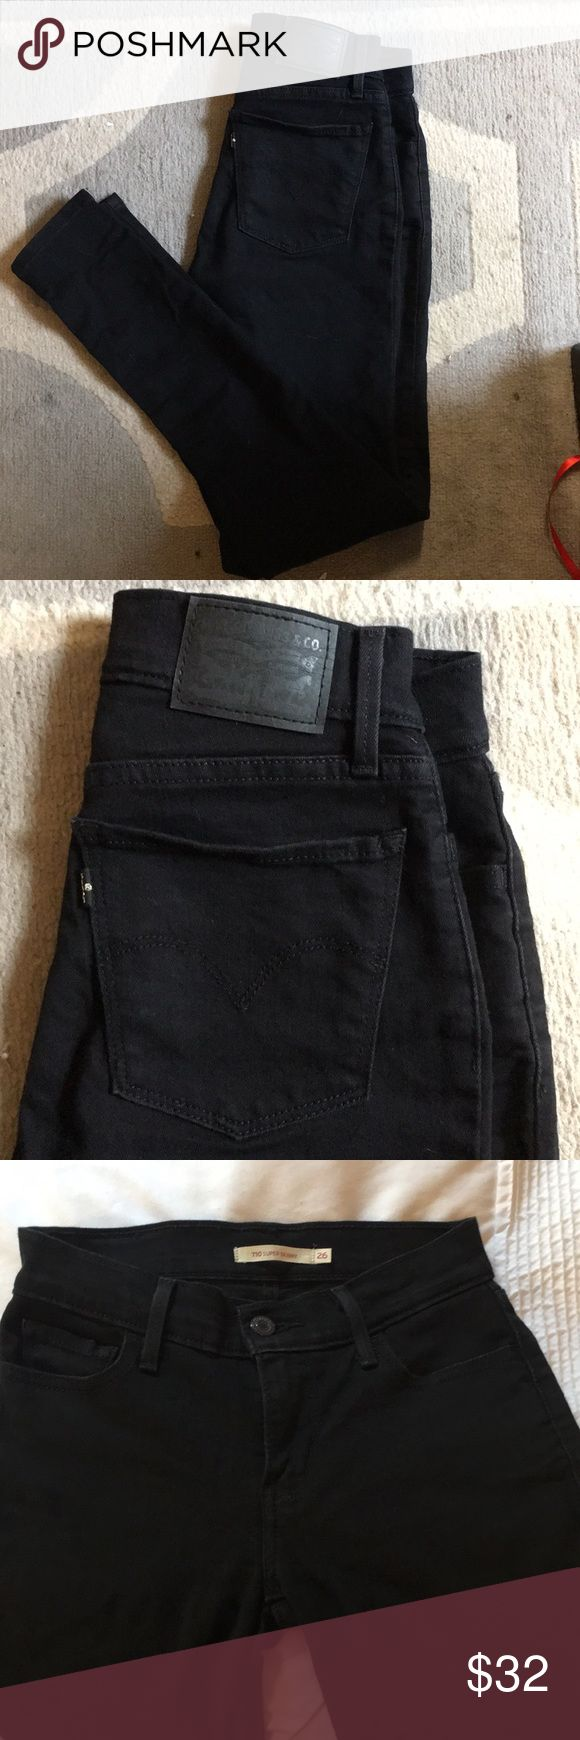 Levi's Black 710 super skinny Jeans Levi's 710 super skinny jean in black. No destruction. All hardware intact and functioning. Very gently used, only worn 2-3 times!! Size runs SMALL, which is why they were only worn 2-3 times. Fits more like a 25/26 than true Levi's 26. Levi's Jeans Skinny